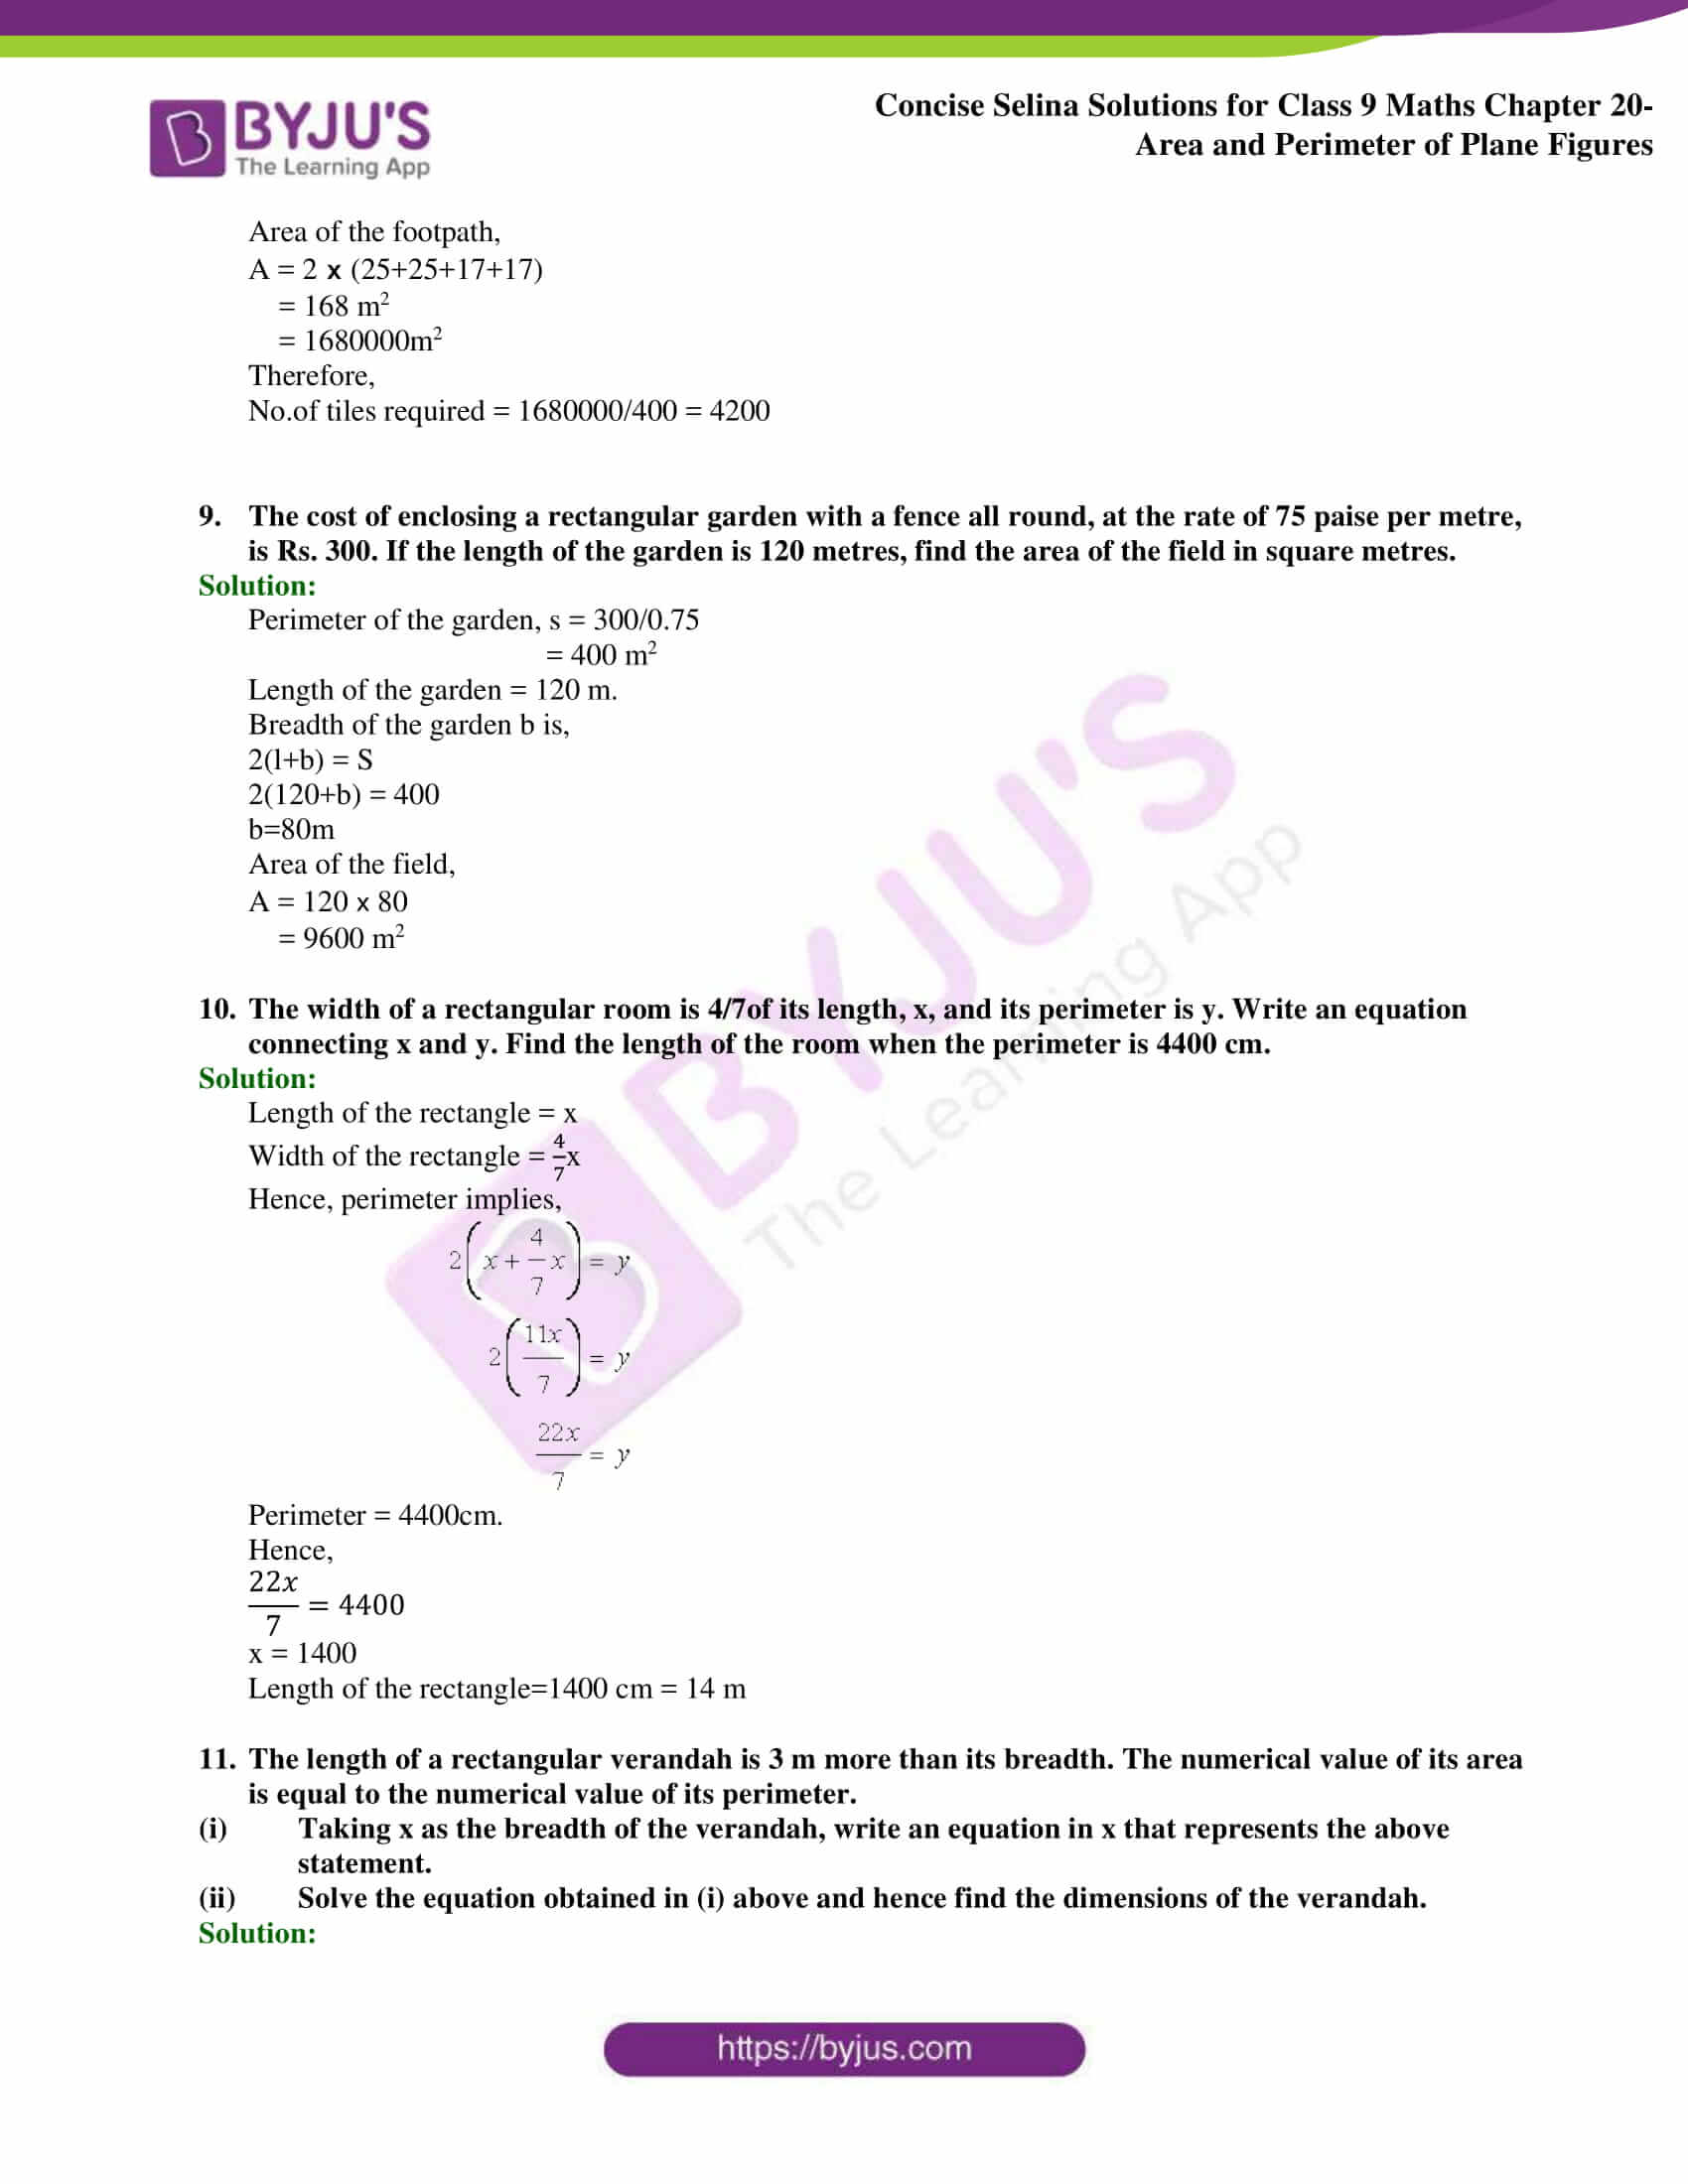 Concise Selina Solutions Class 9 Maths Chapter 20 Area and Perimeter of Plane part 15